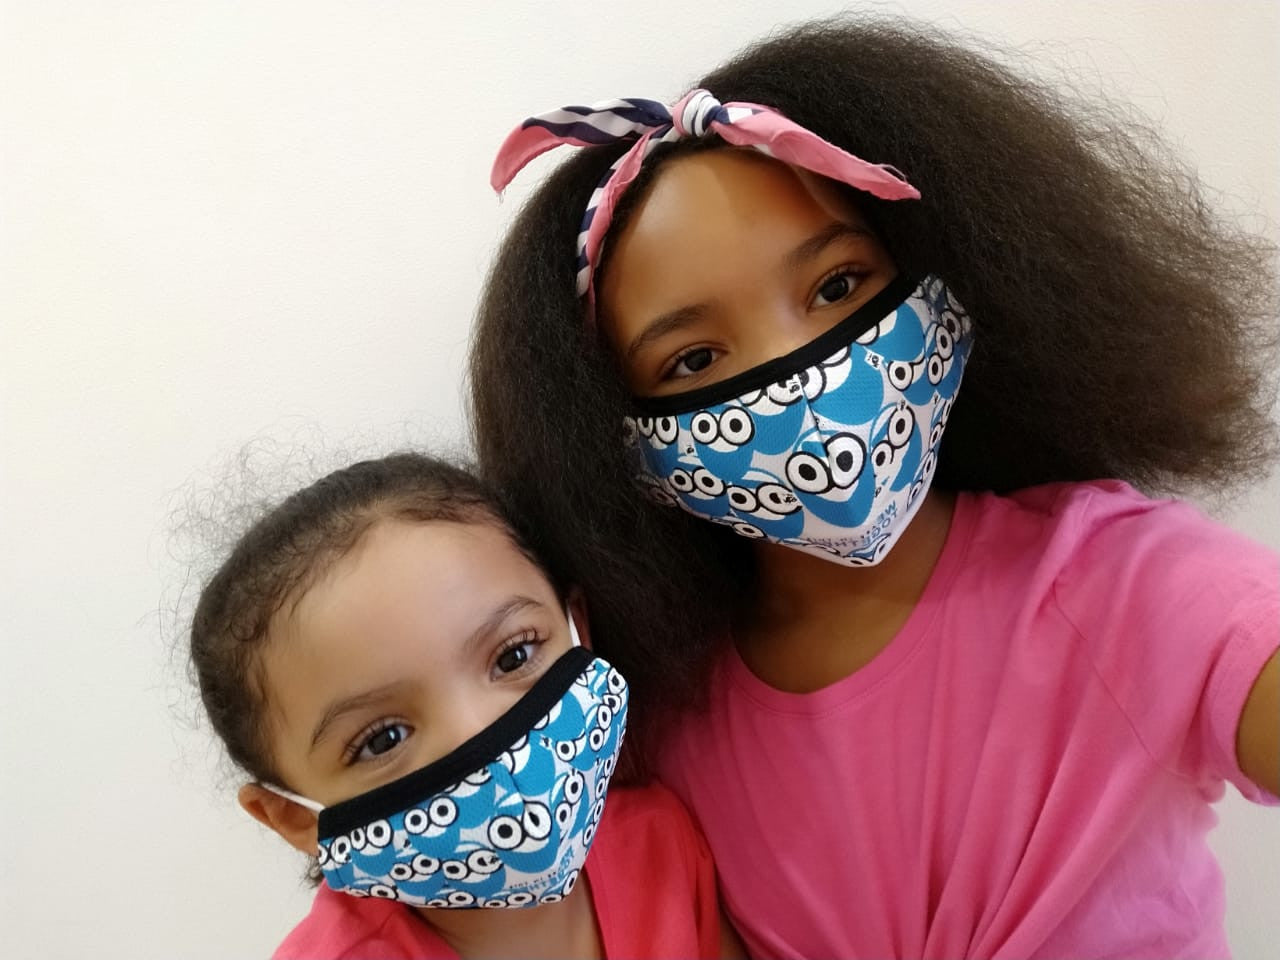 kids masks, ppe, face masks, covid19, protection against viruses